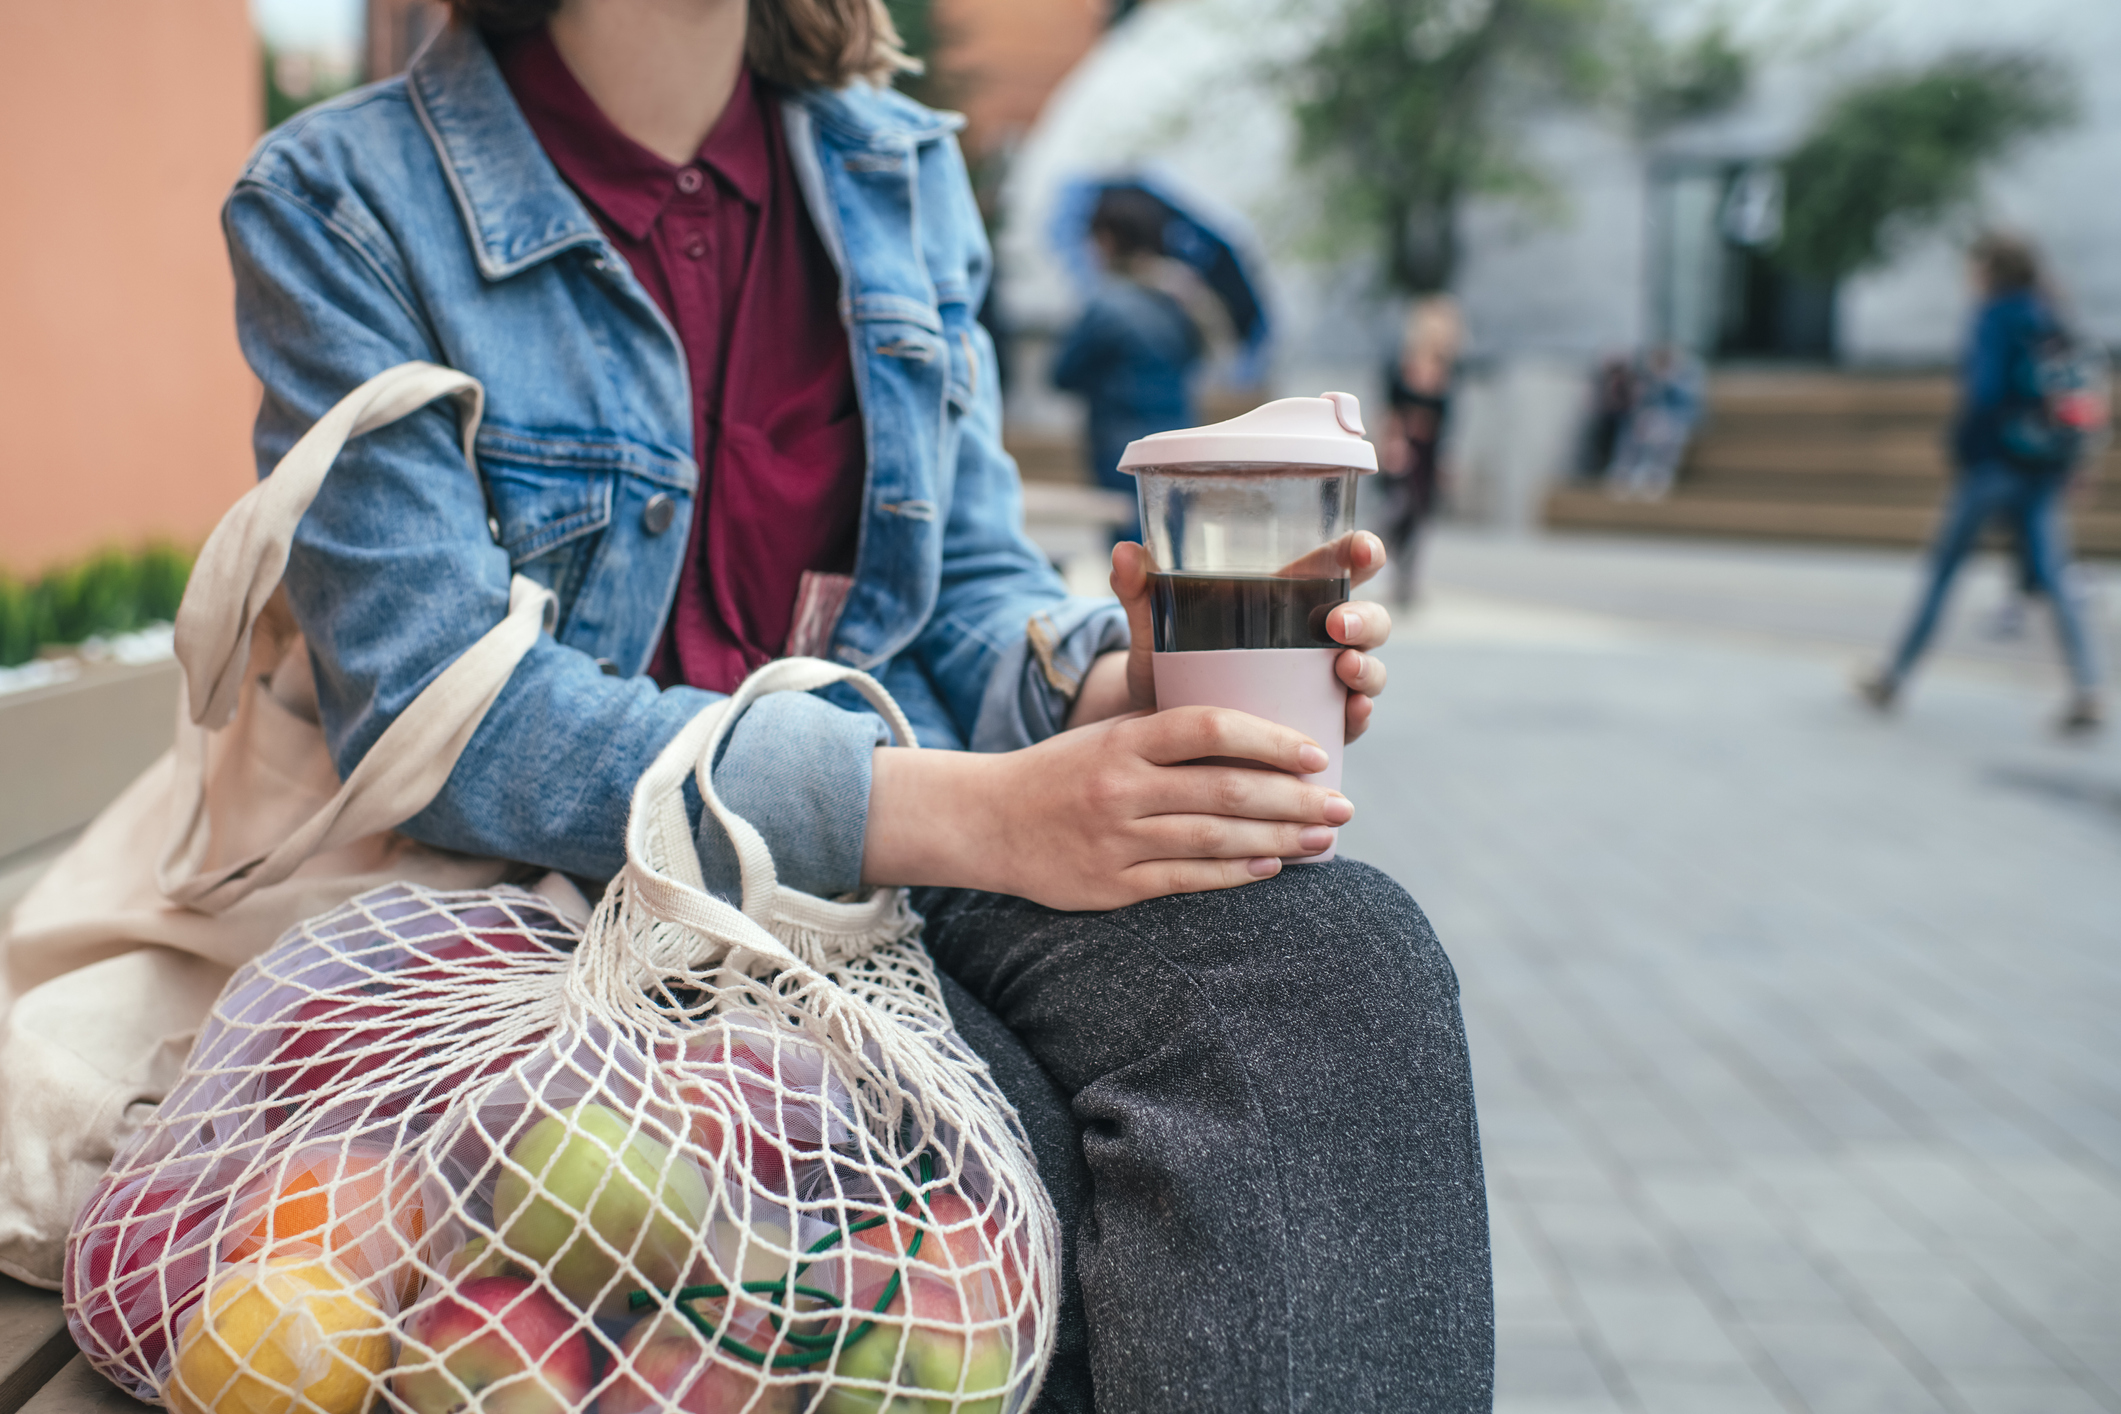 Woman holding a reusable coffee cup and mesh produce bag.